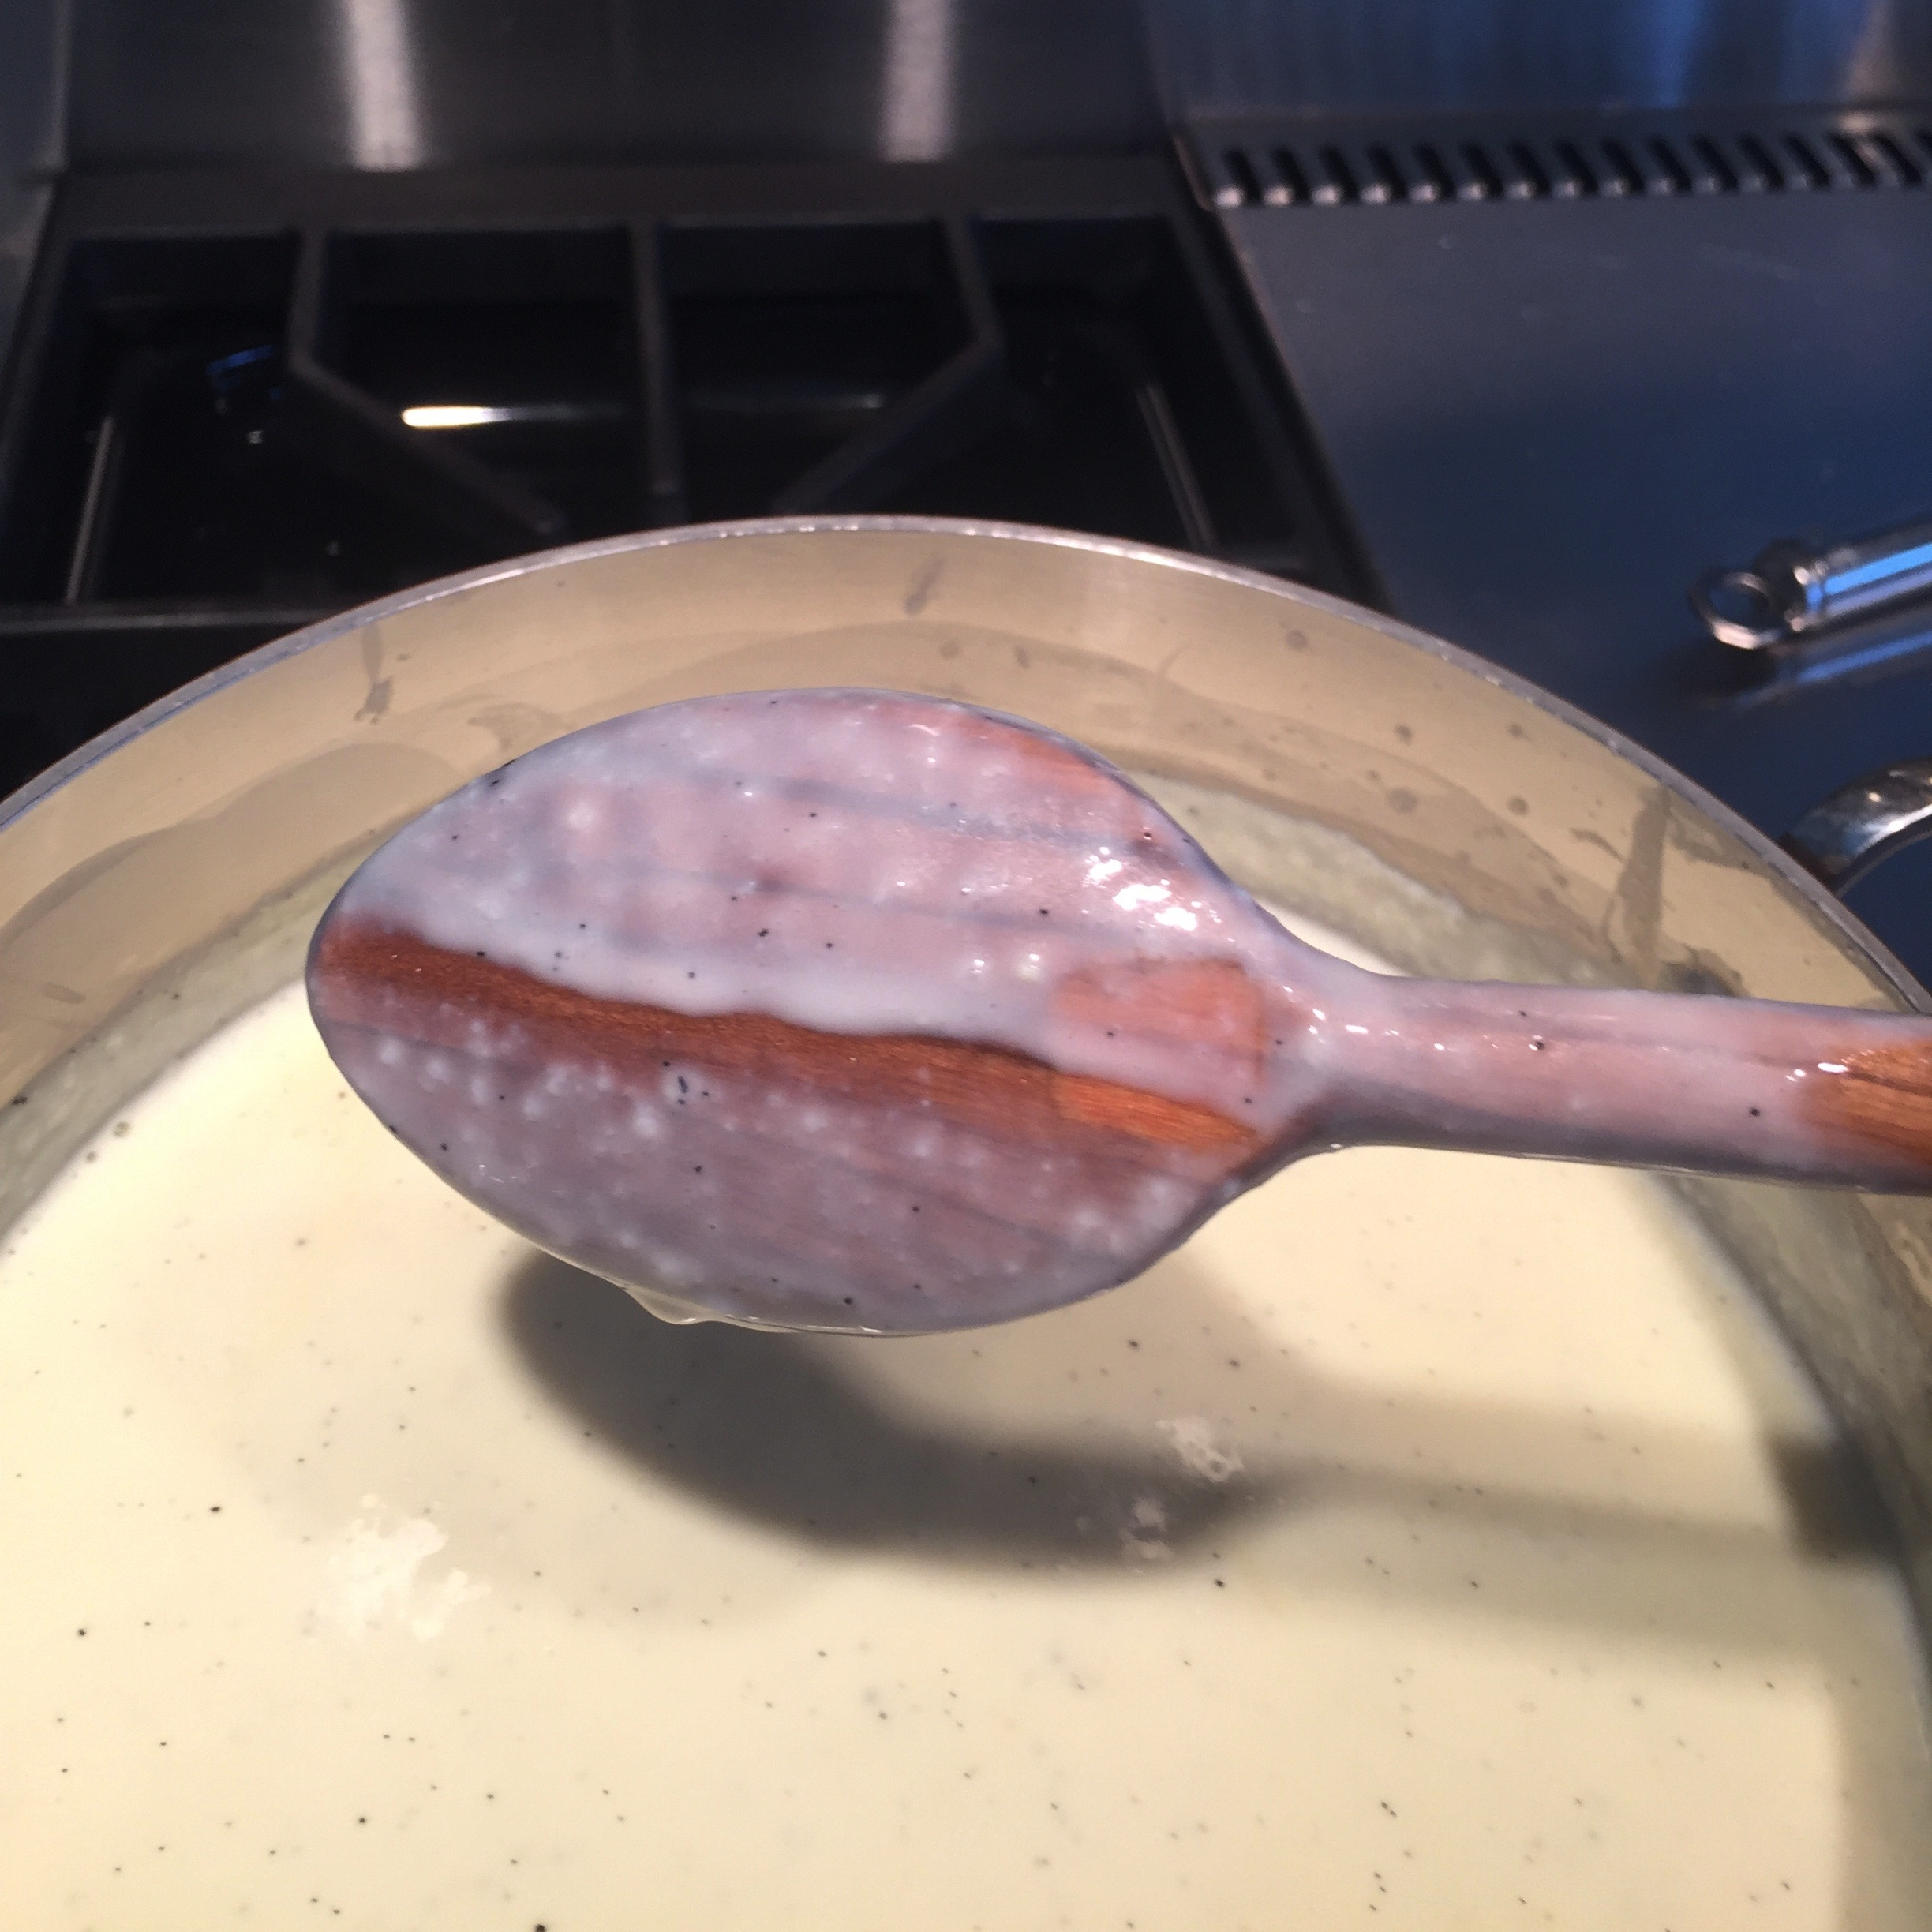 This custard is finished cooking. When you draw a line with your finger through the custard clinging to the back of the spoon it does not fill in.